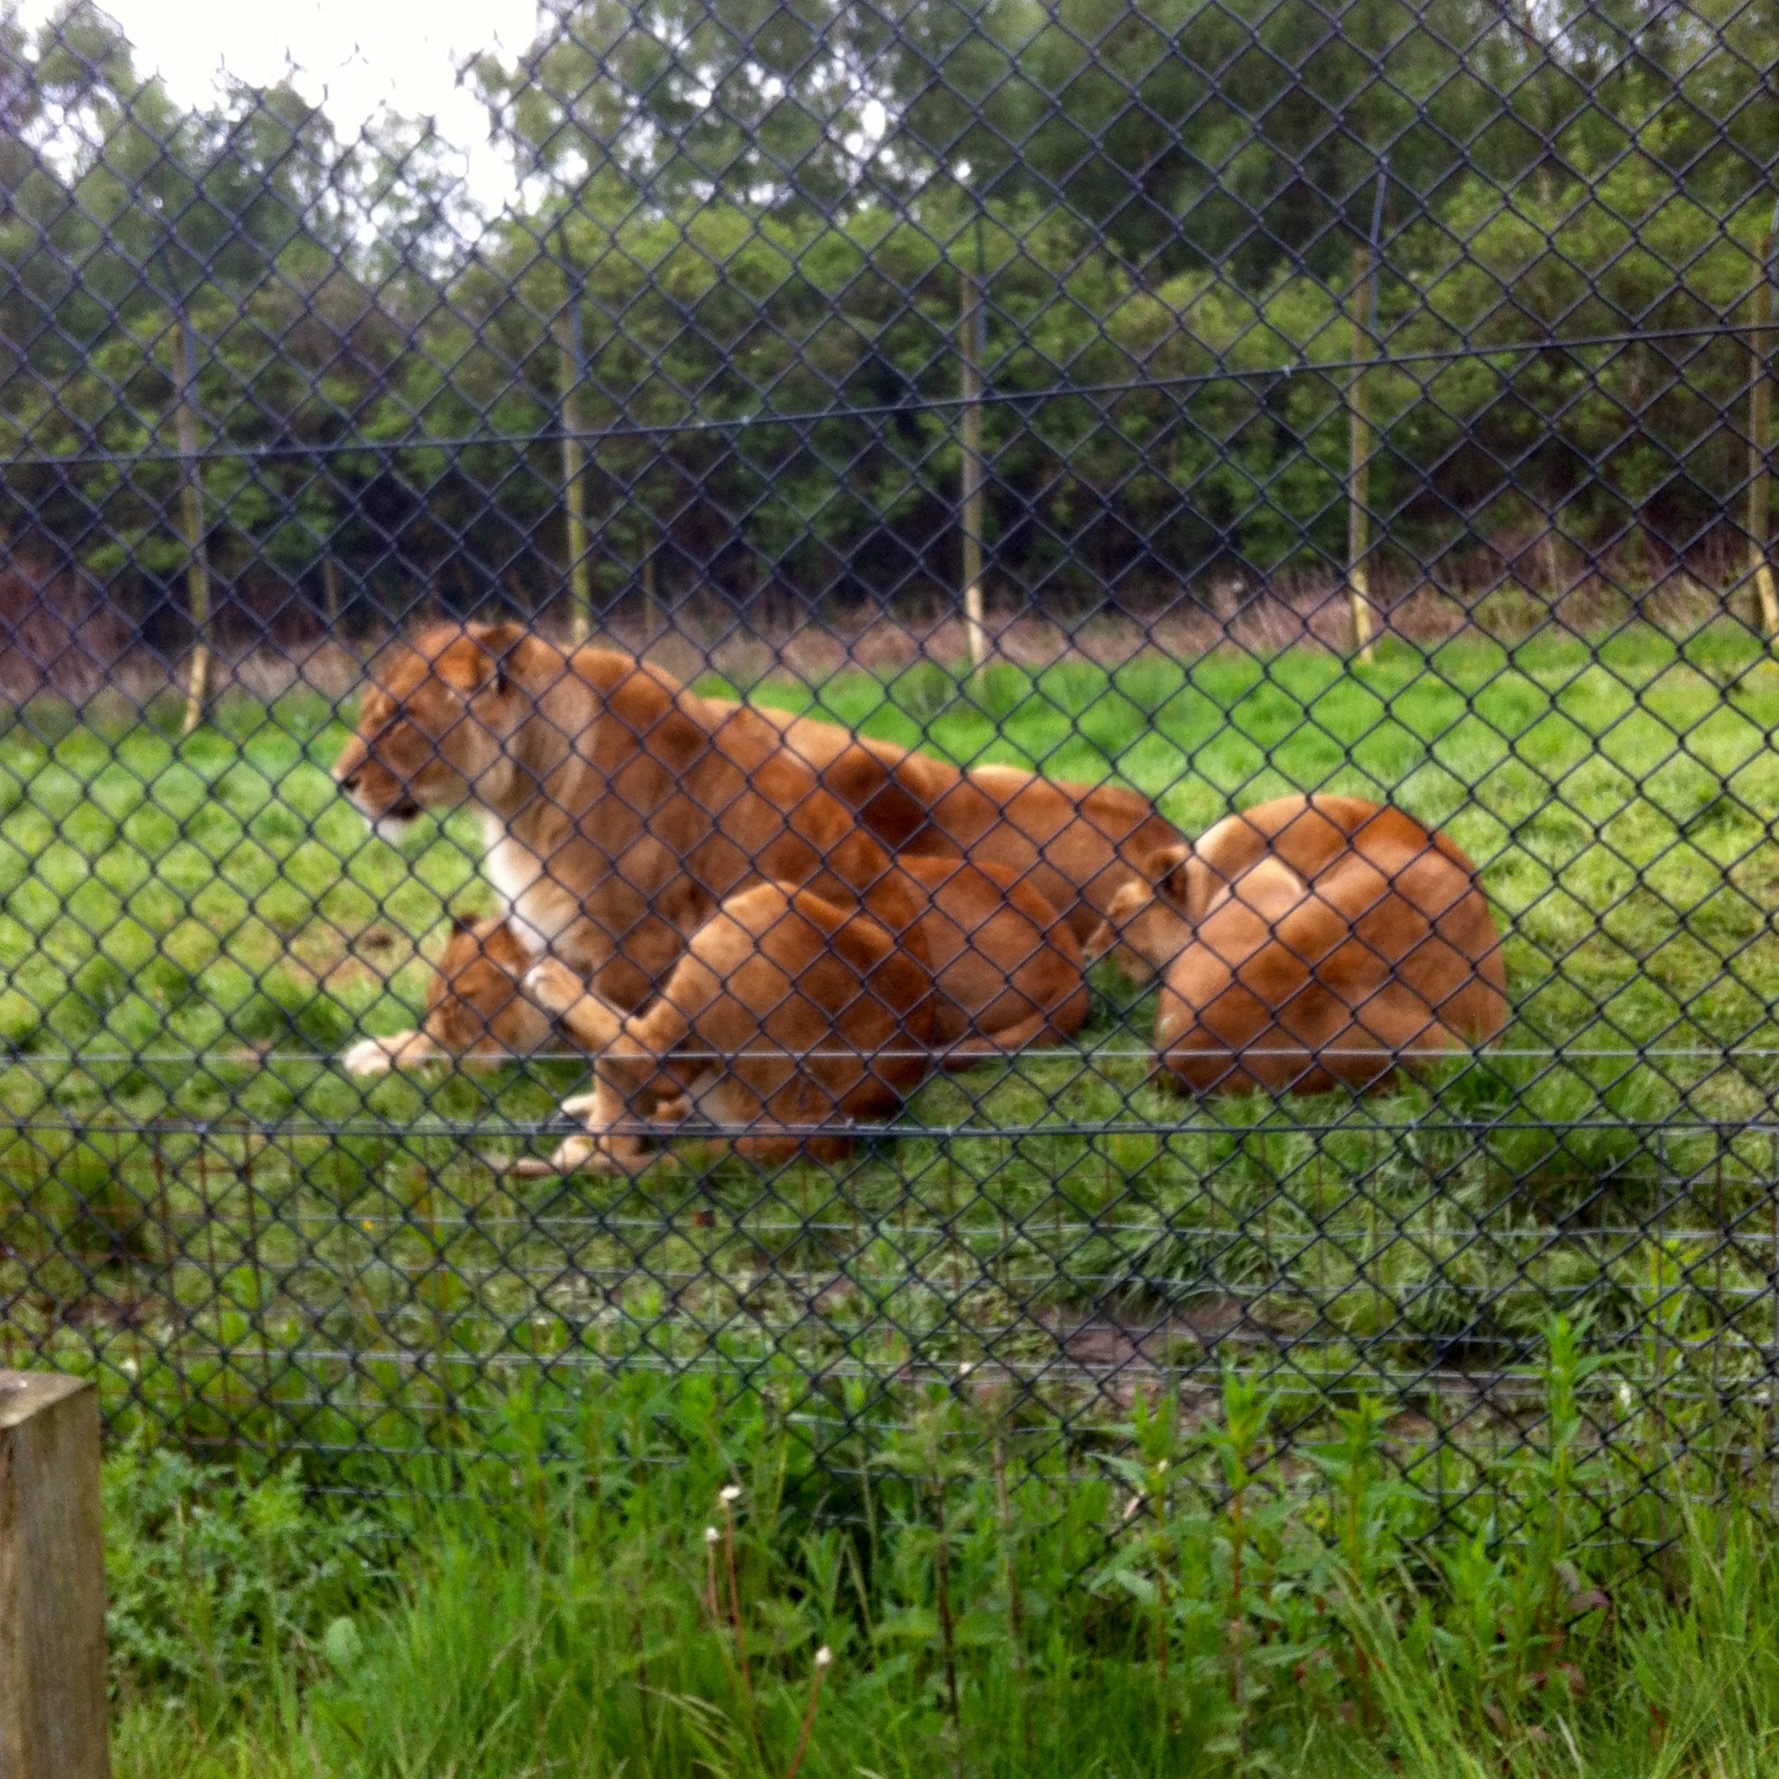 Knowsley safari park review